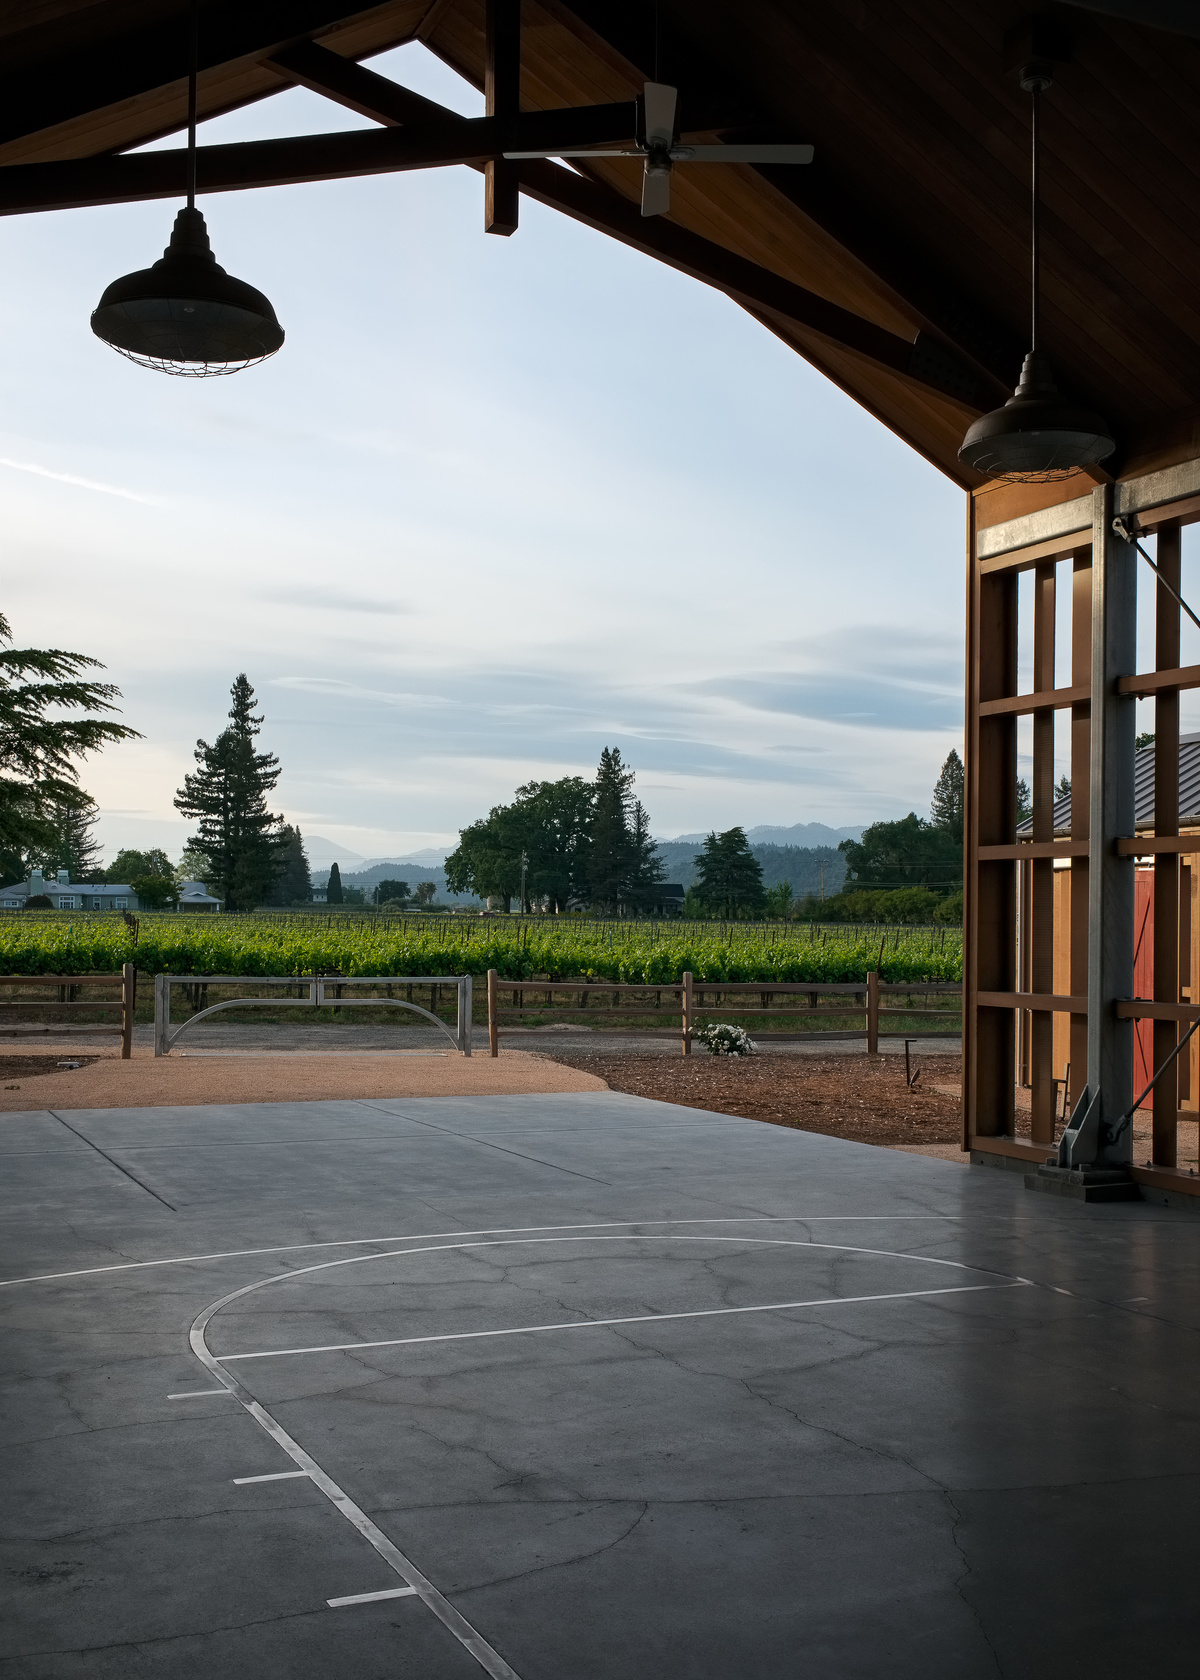 Napa barn anderson architects archinect for Anderson architects